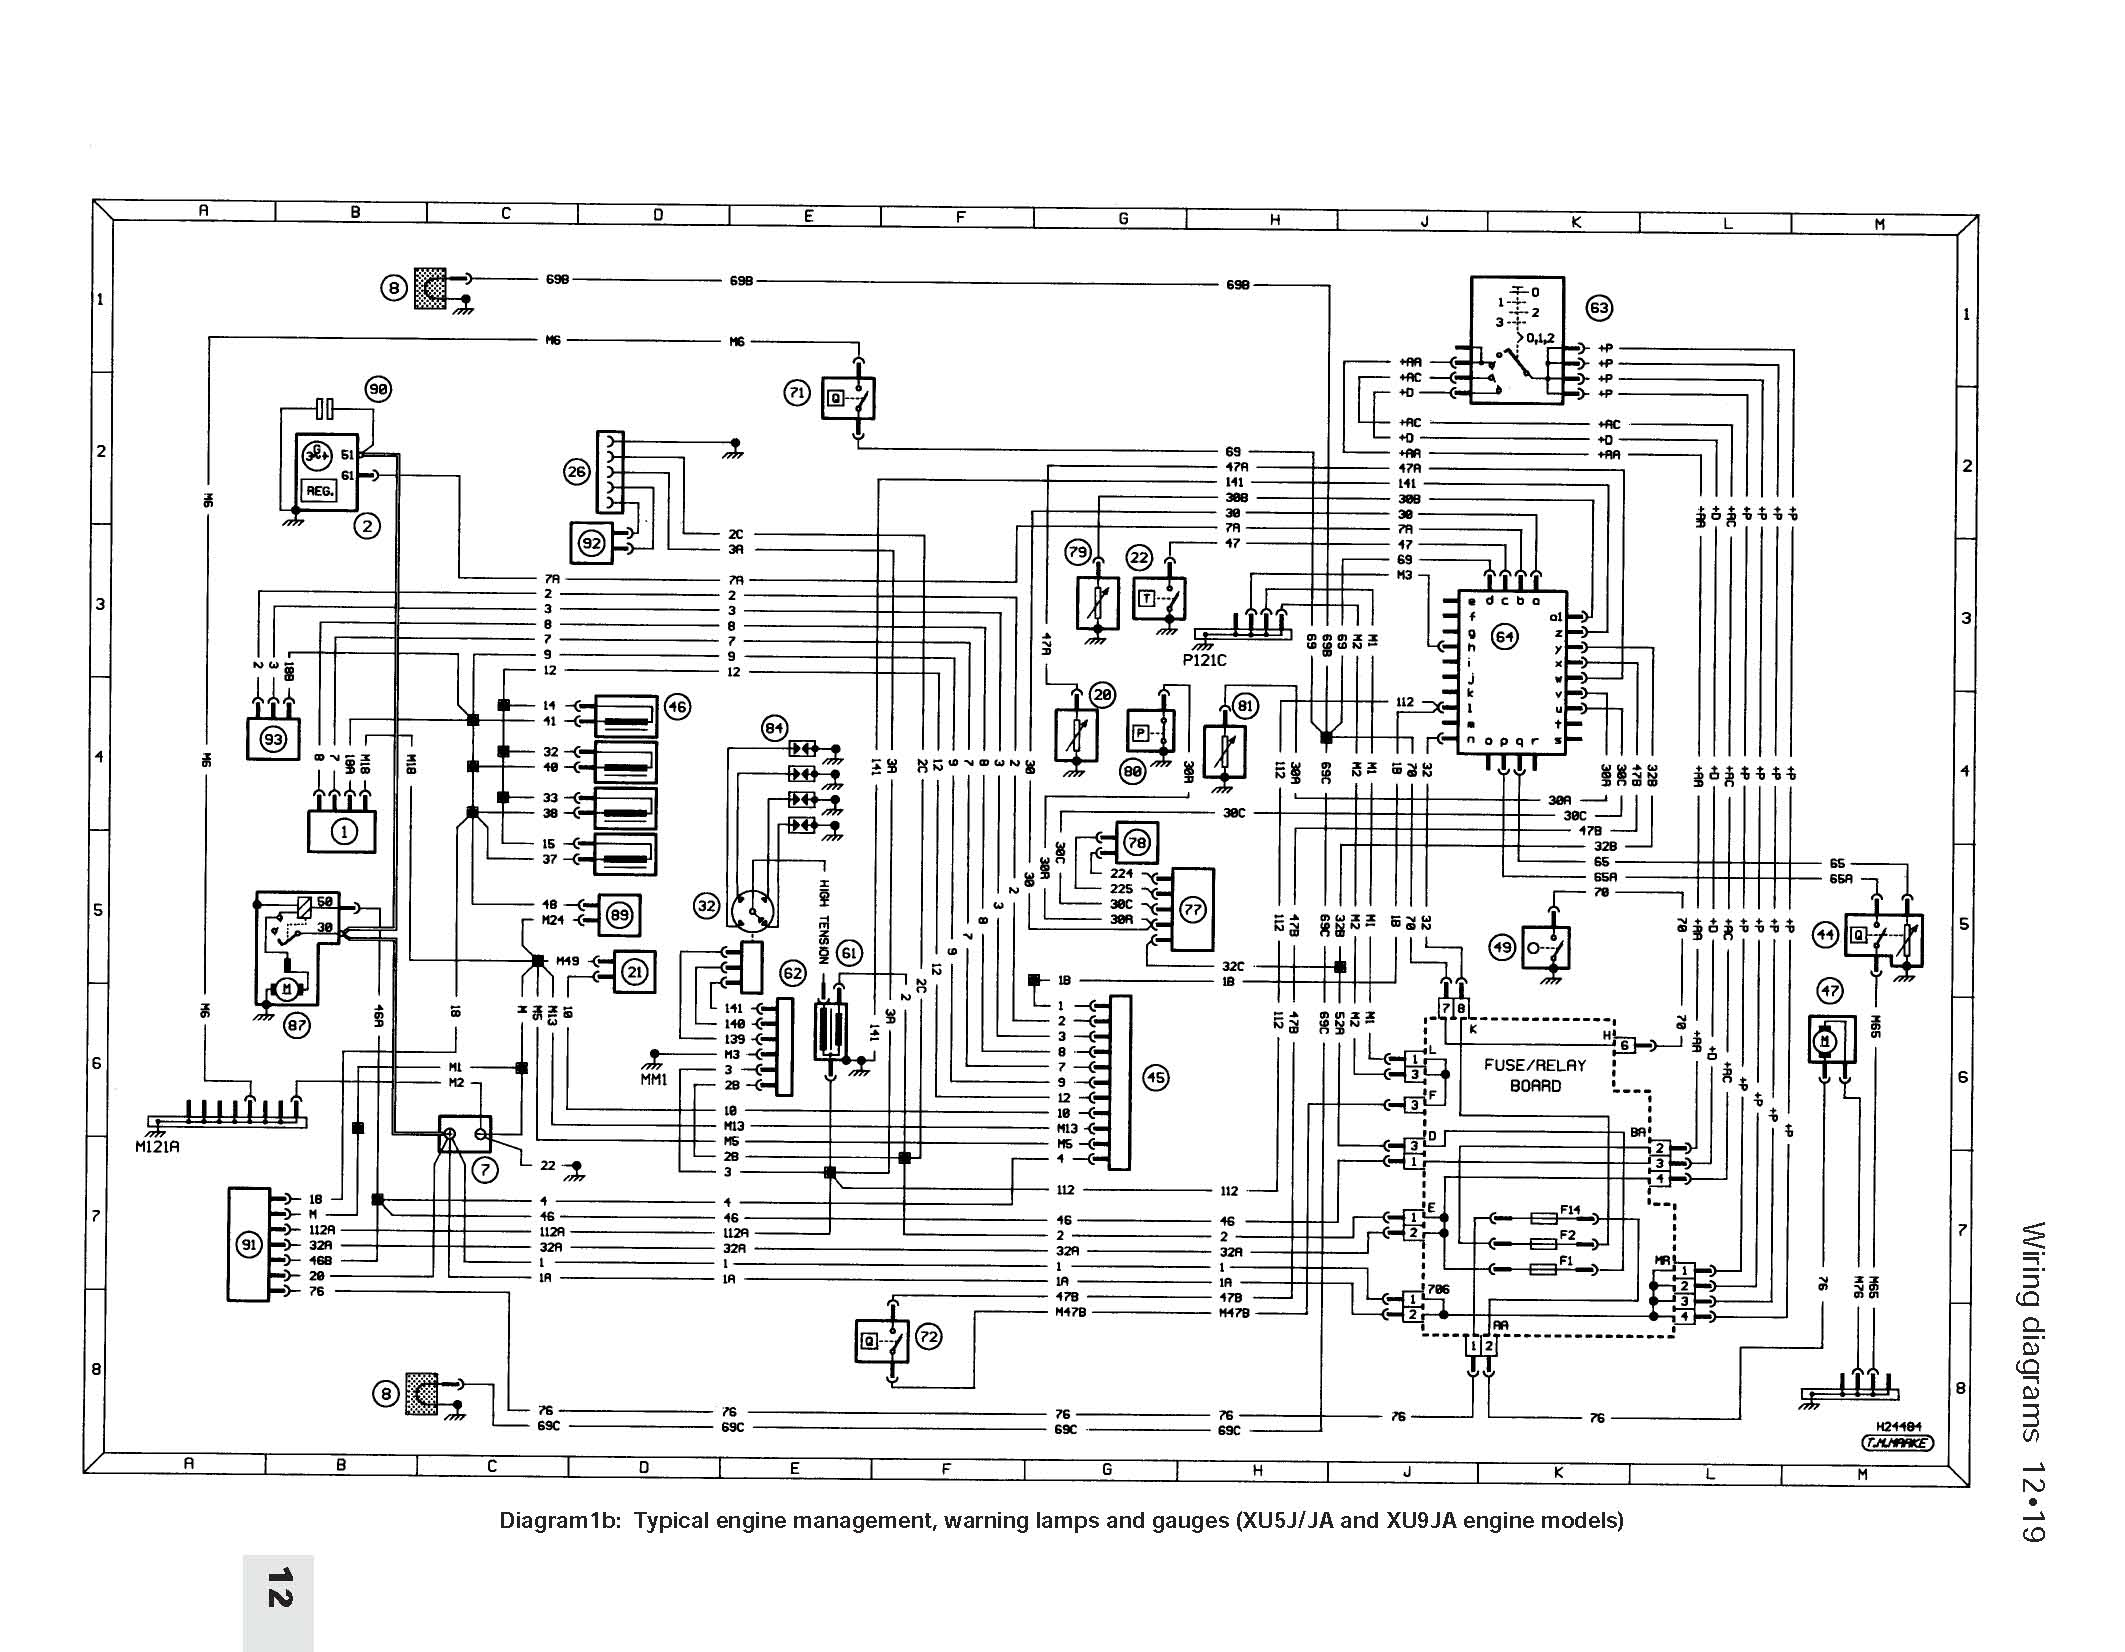 peugeot 106 wiring diagram electrical system circuit images image peugeot gti wiring diagram need